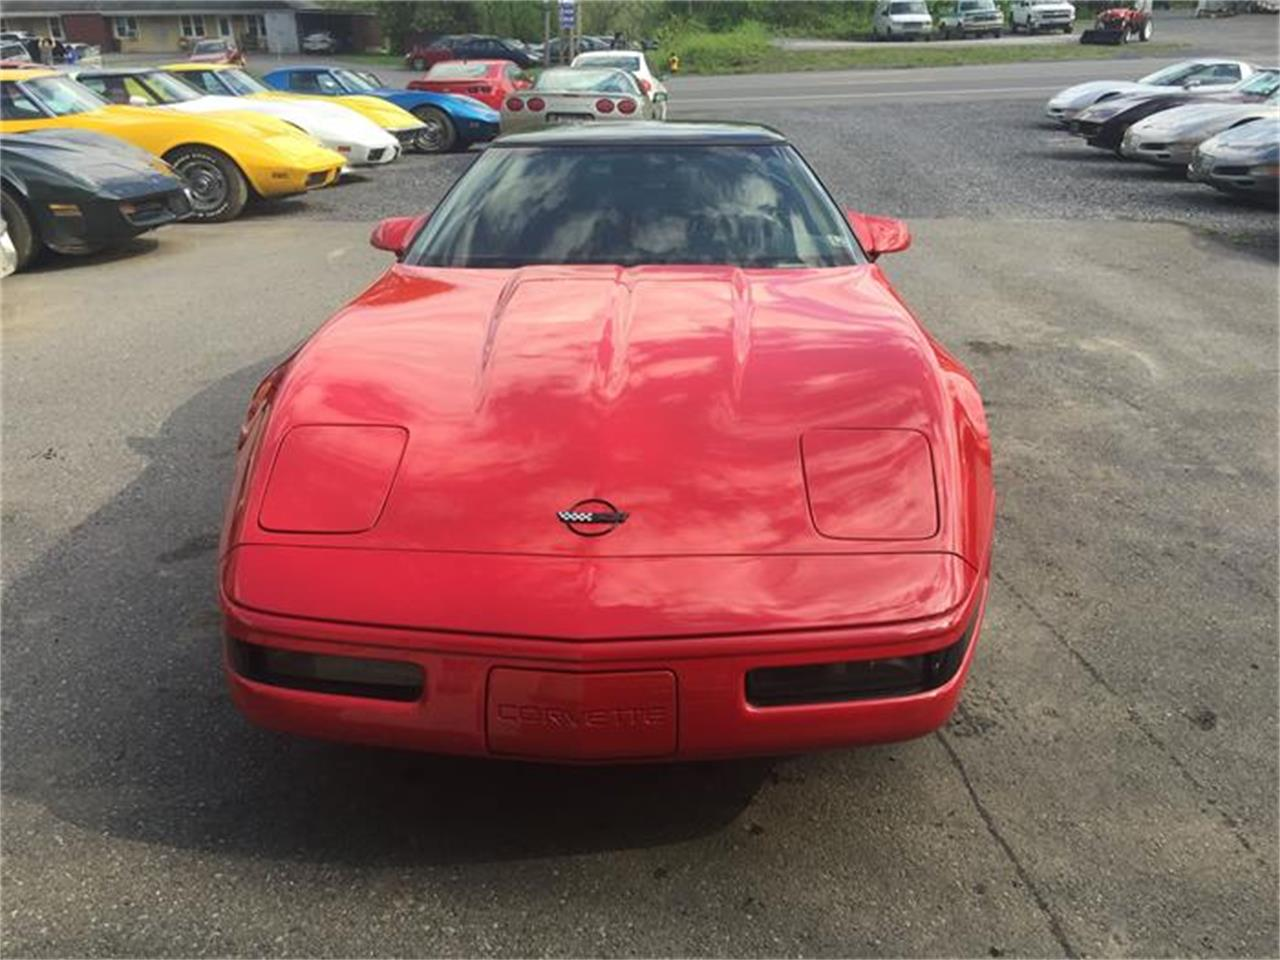 Large Picture of 1992 Chevrolet Corvette located in Pennsylvania - $8,500.00 Offered by Keystone Corvettes - I0FG